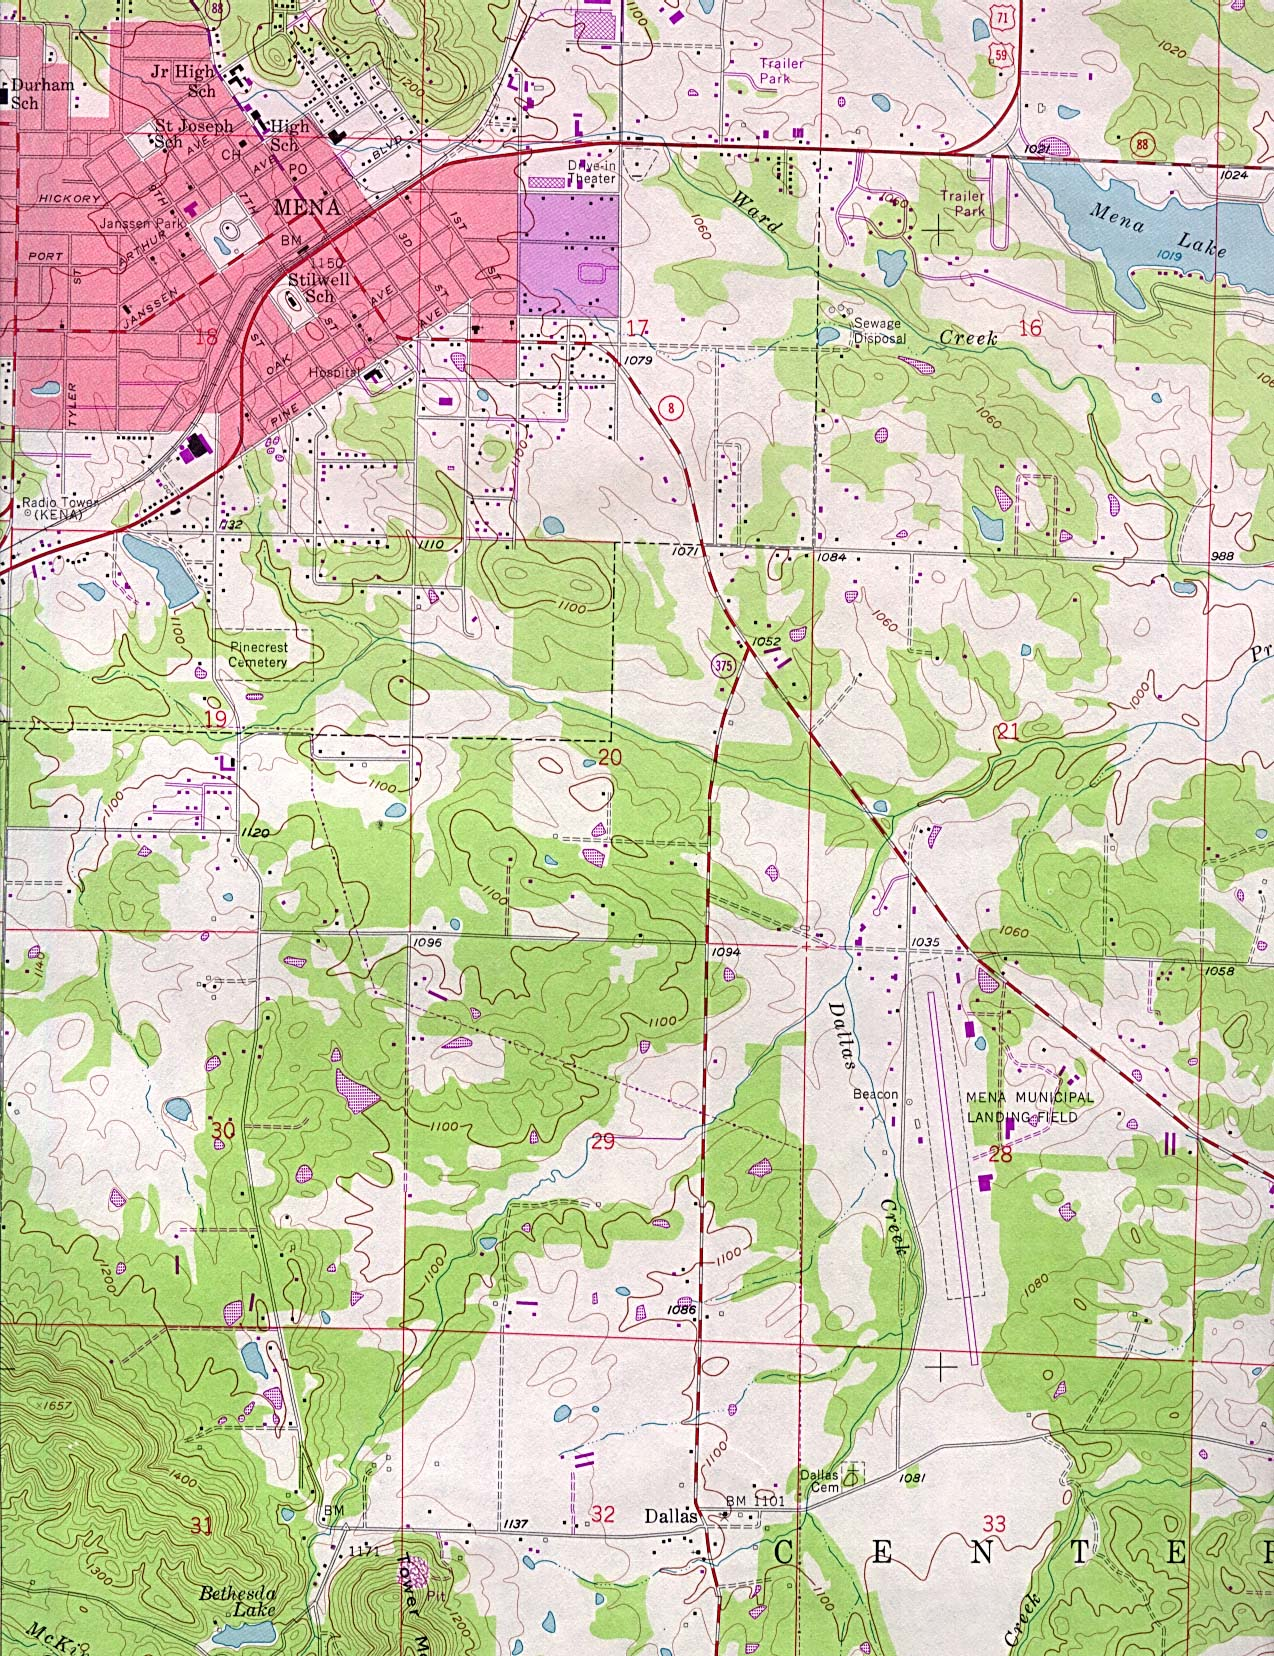 Mena Topographic City Map, Arkansas, United States